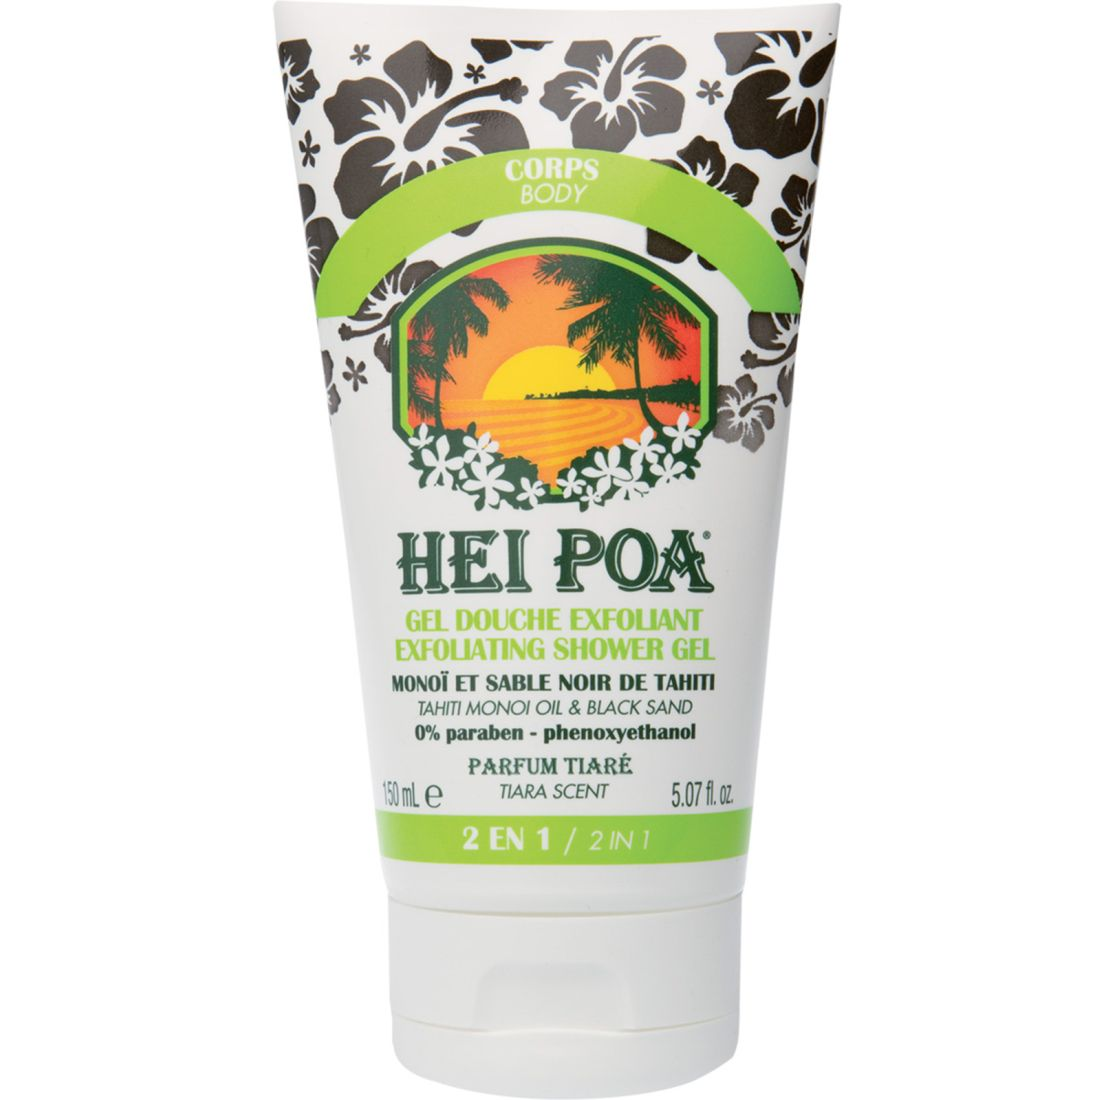 Hei Poa Exfoliating Shower Gel with Tahiti Monoi Oil & Black Sand 150ml